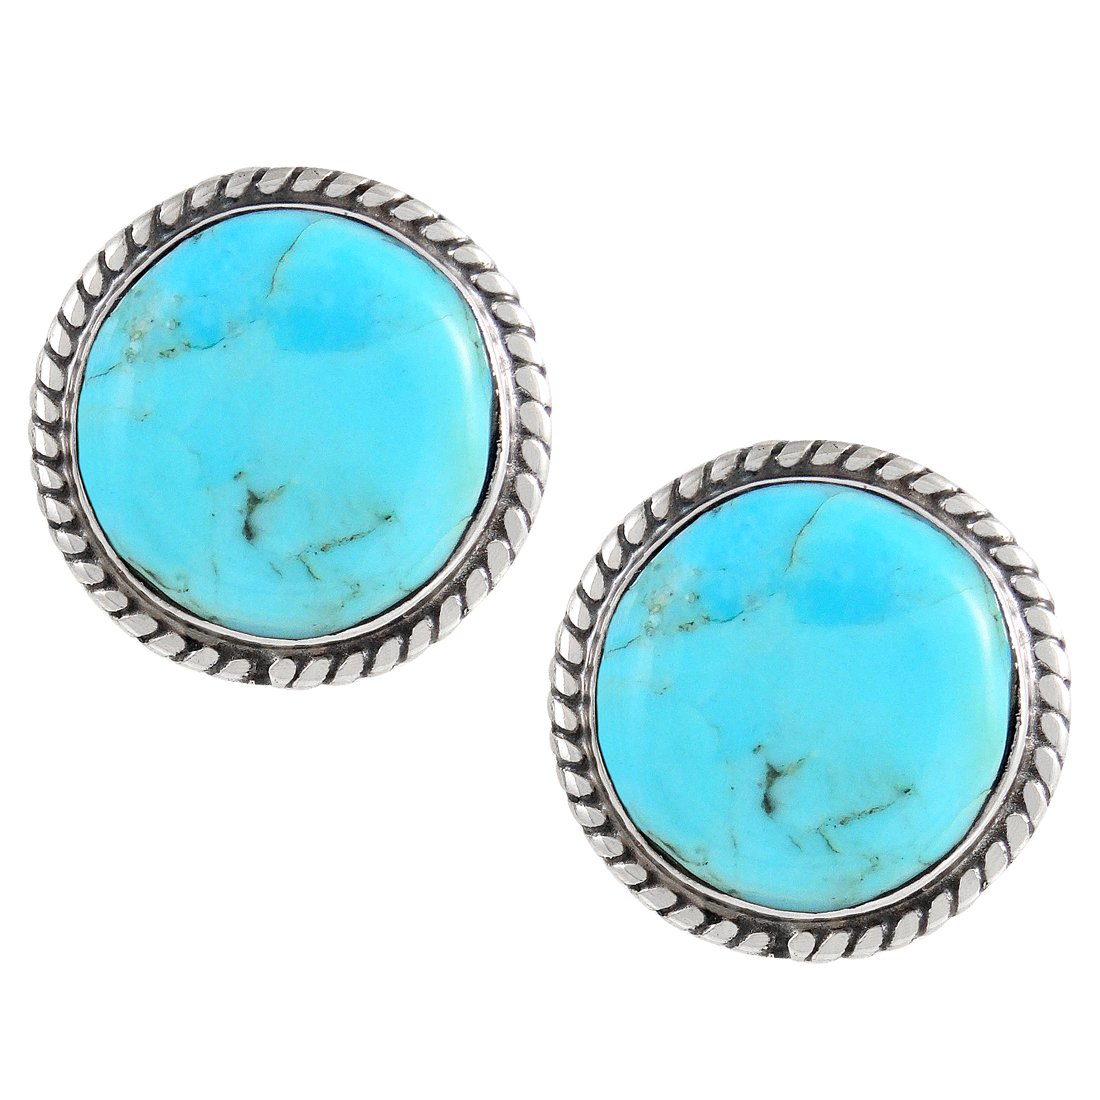 Turquoise Earrings 925 Sterling Silver & Genuine Turquoise (Round)